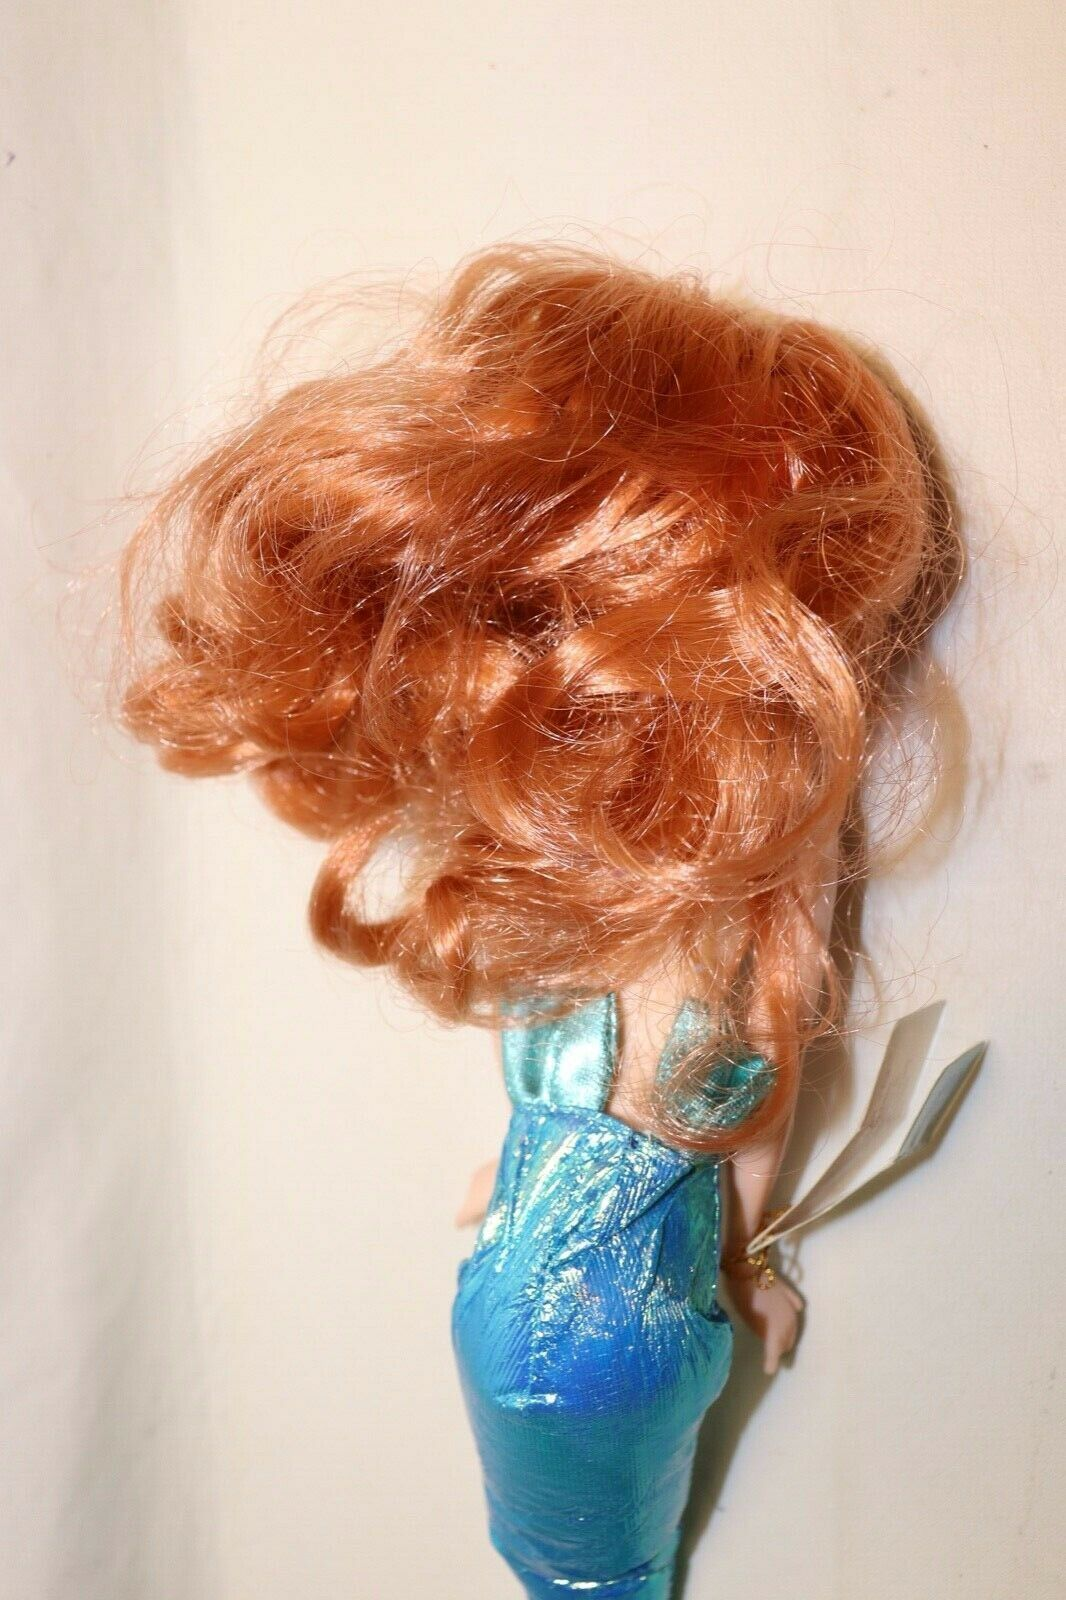 Disney Ariel the Little Mermaid Doll by Applause w Tags image 3